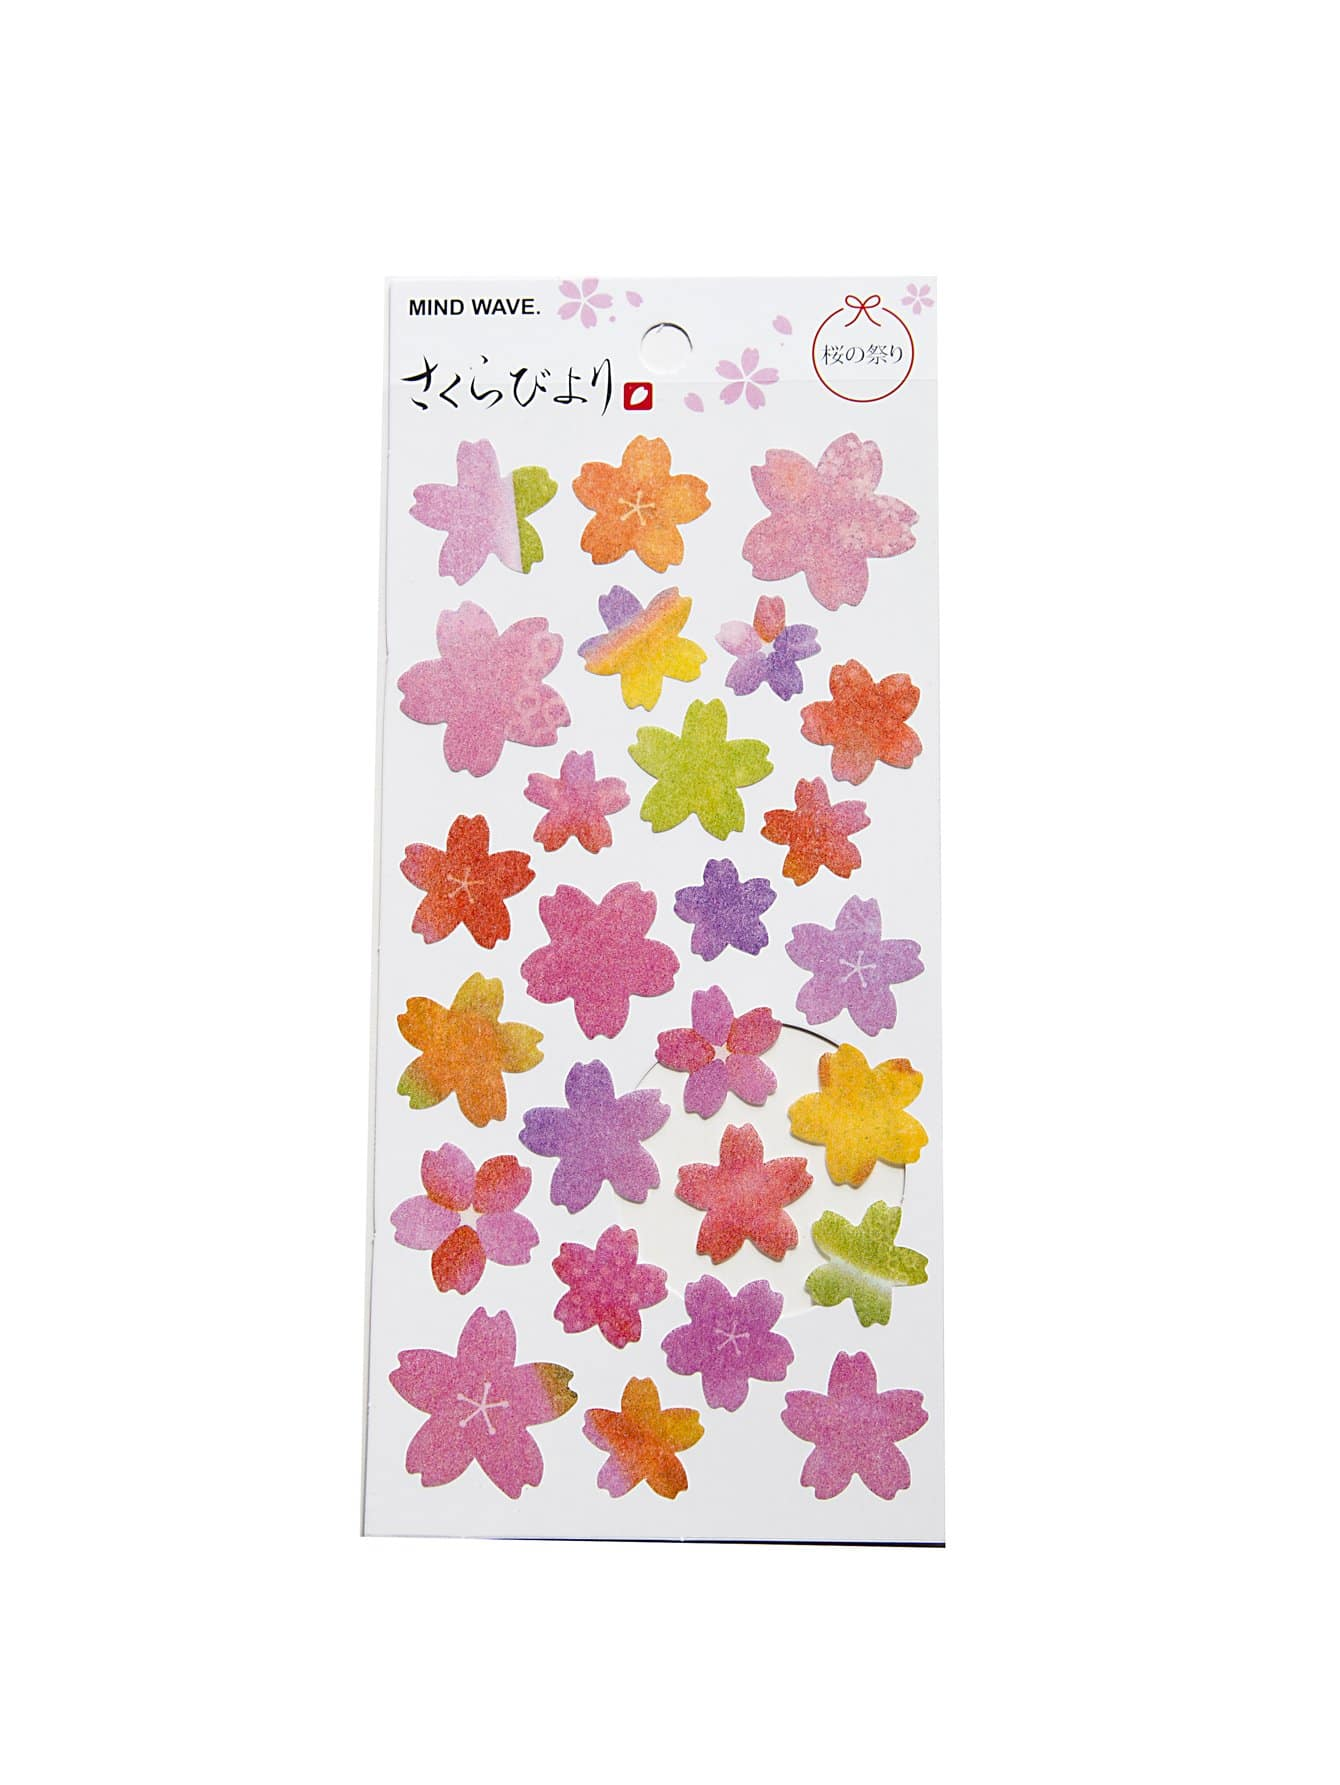 Flower Sticker Pack 45 pcs pack animal blue whale fish mini paper sticker diary decoration diy scrapbooking label seal sticker stationery